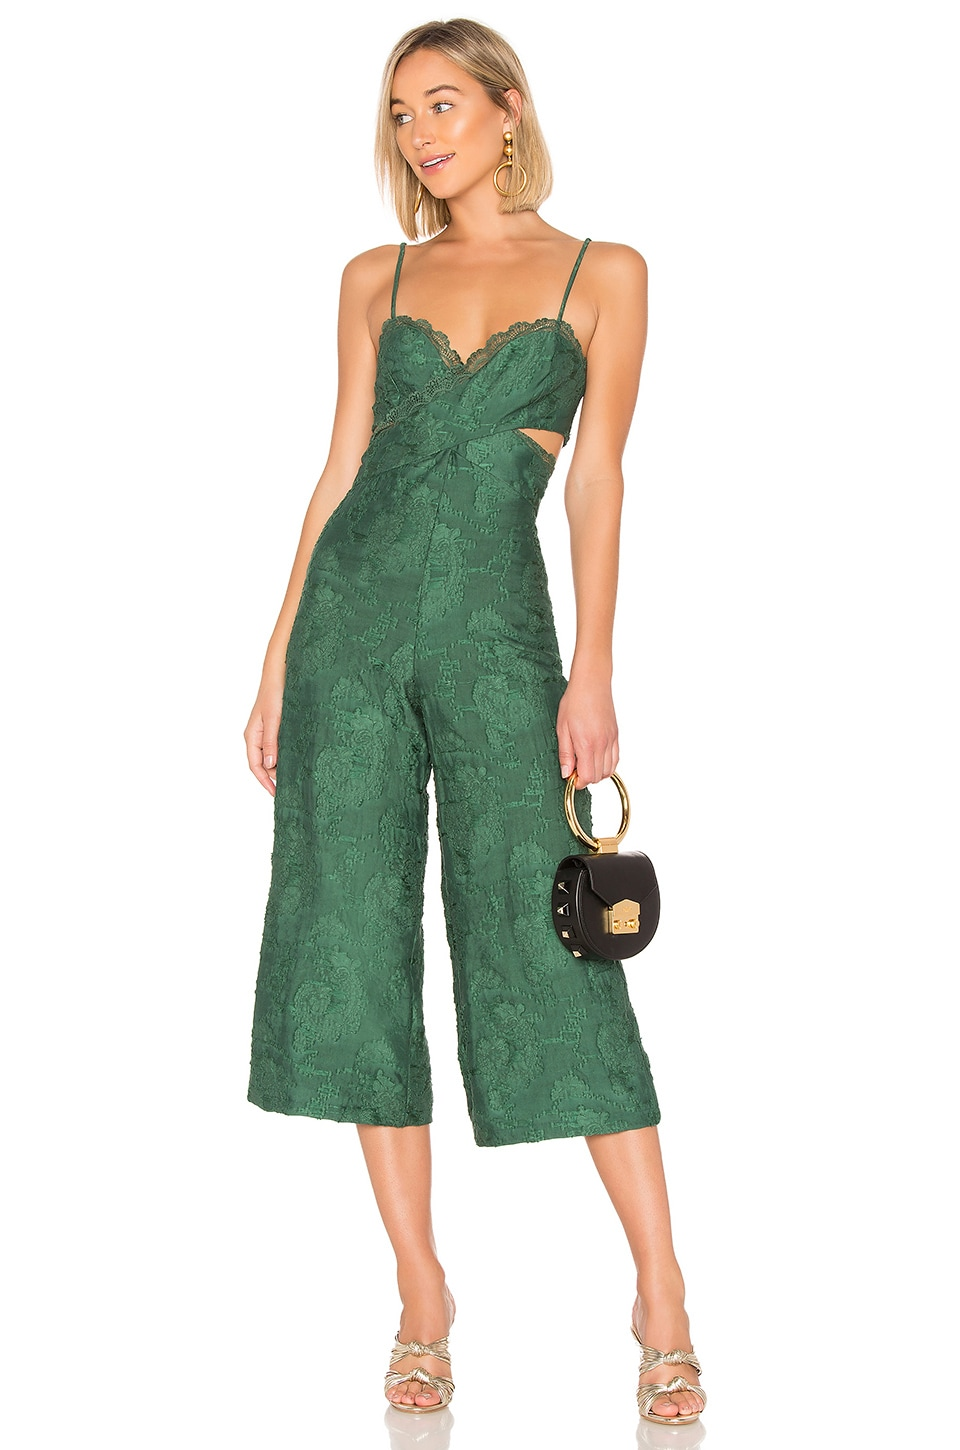 House of Harlow 1960 x REVOLVE Joelle Jumpsuit in Emerald Green